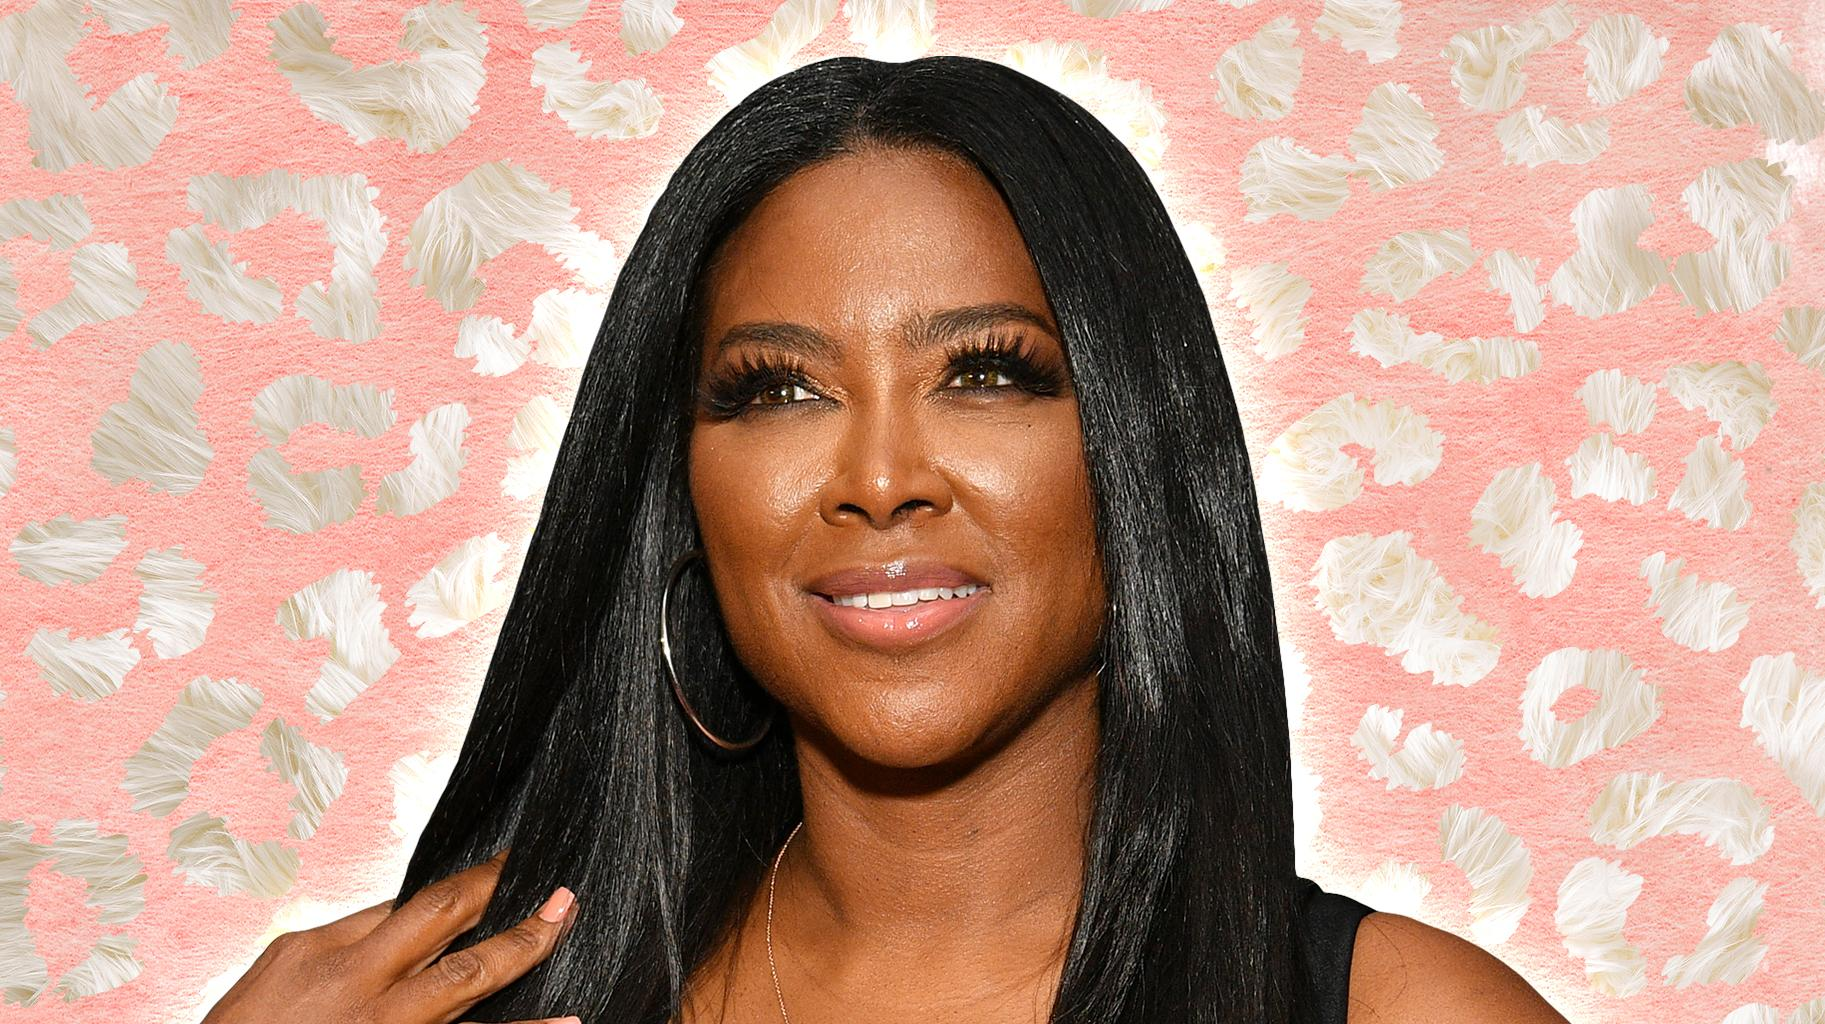 Kenya Moore Looks Gorgeous In Her White Dress For The RHOA Virtual Reunion